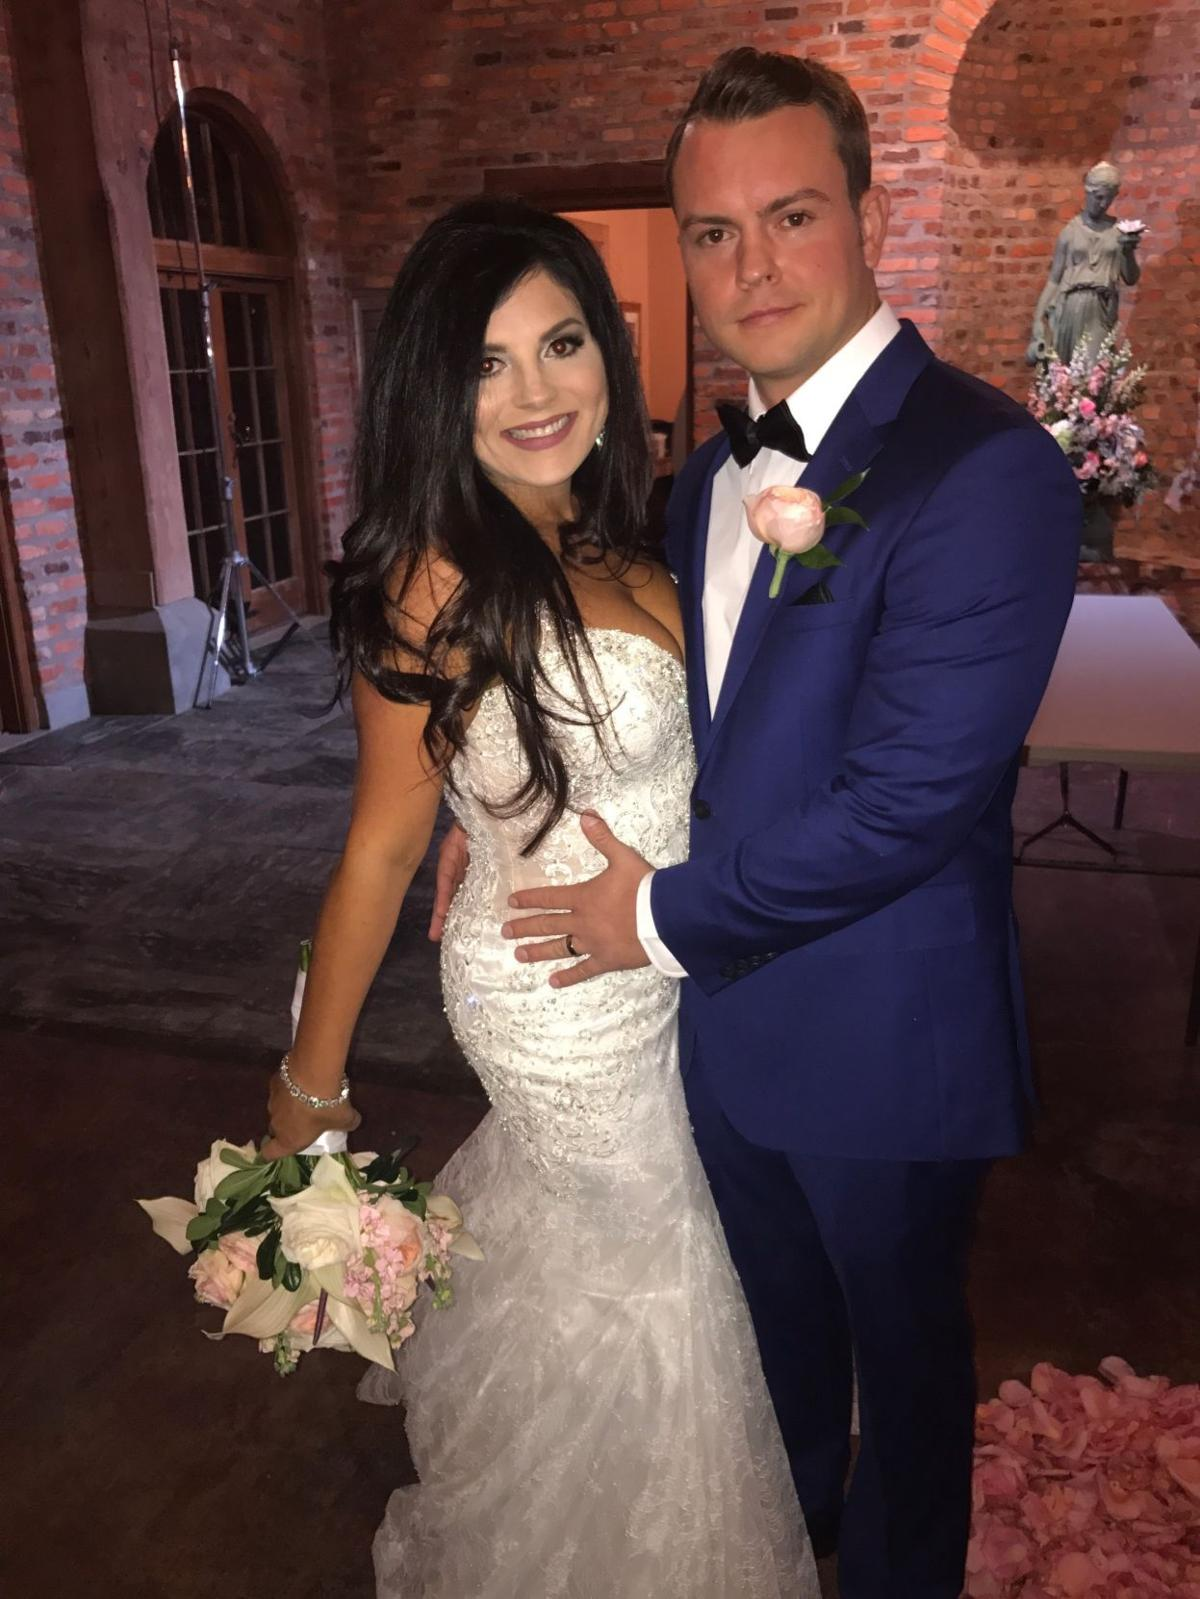 Walker Bride Who Lost It All In August Flood Gets Gorgeous Say